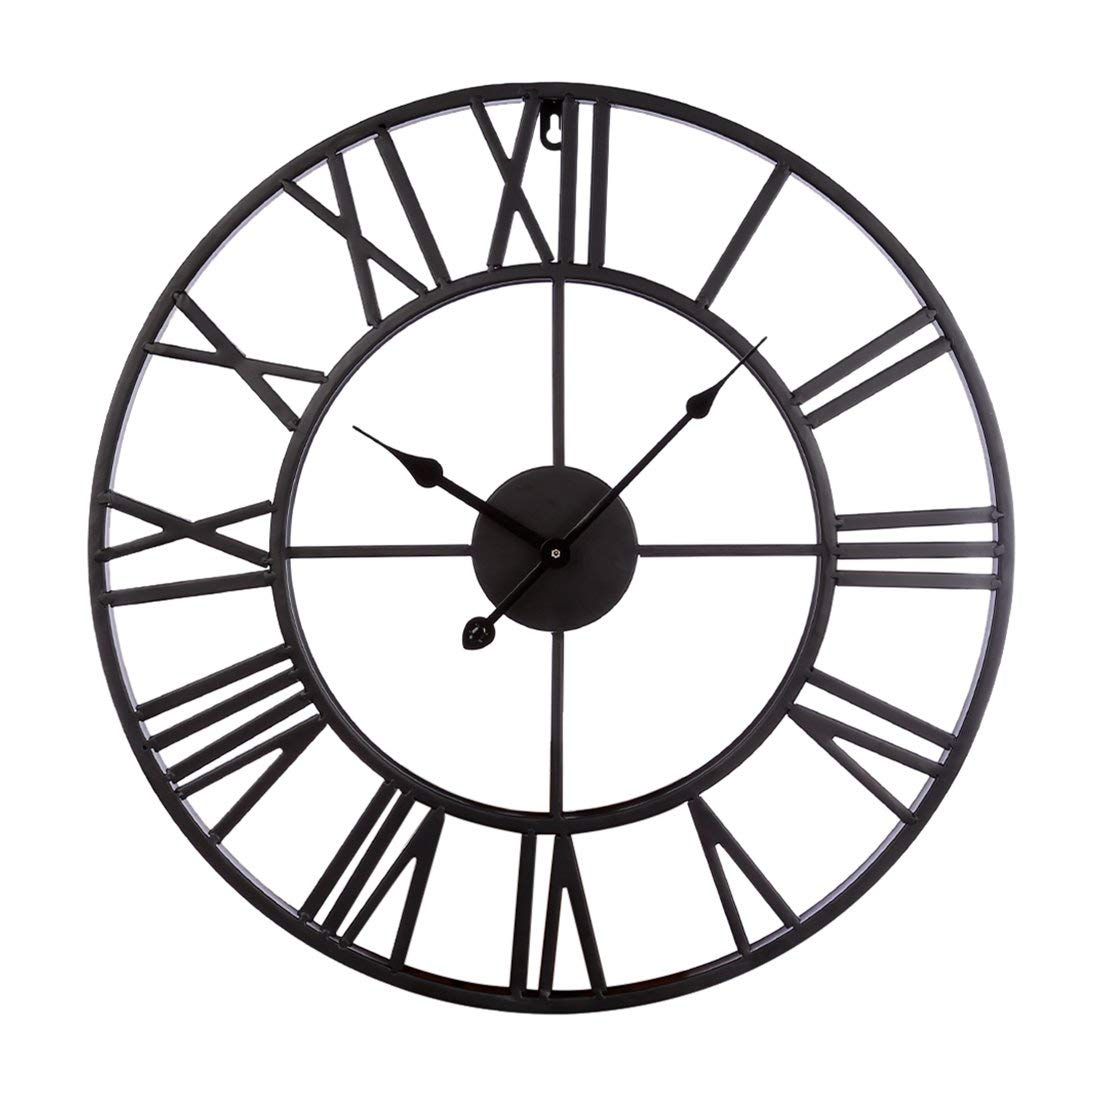 1100x1100 Fcoson Vintage Metal Clock Hollowed Out Roman Numeral